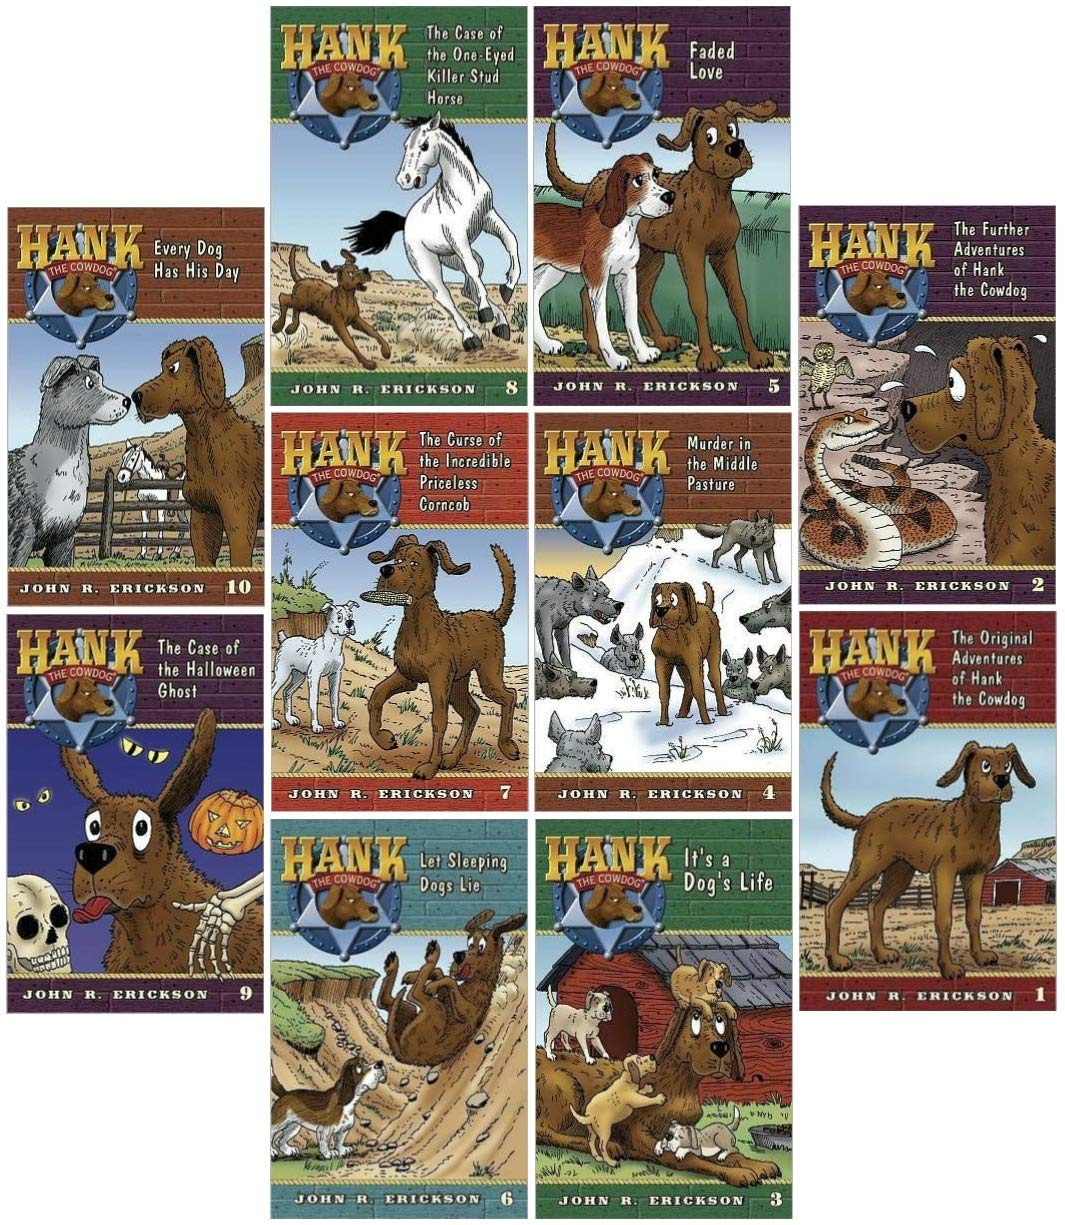 Hank the Cowdog Set by [publisher]